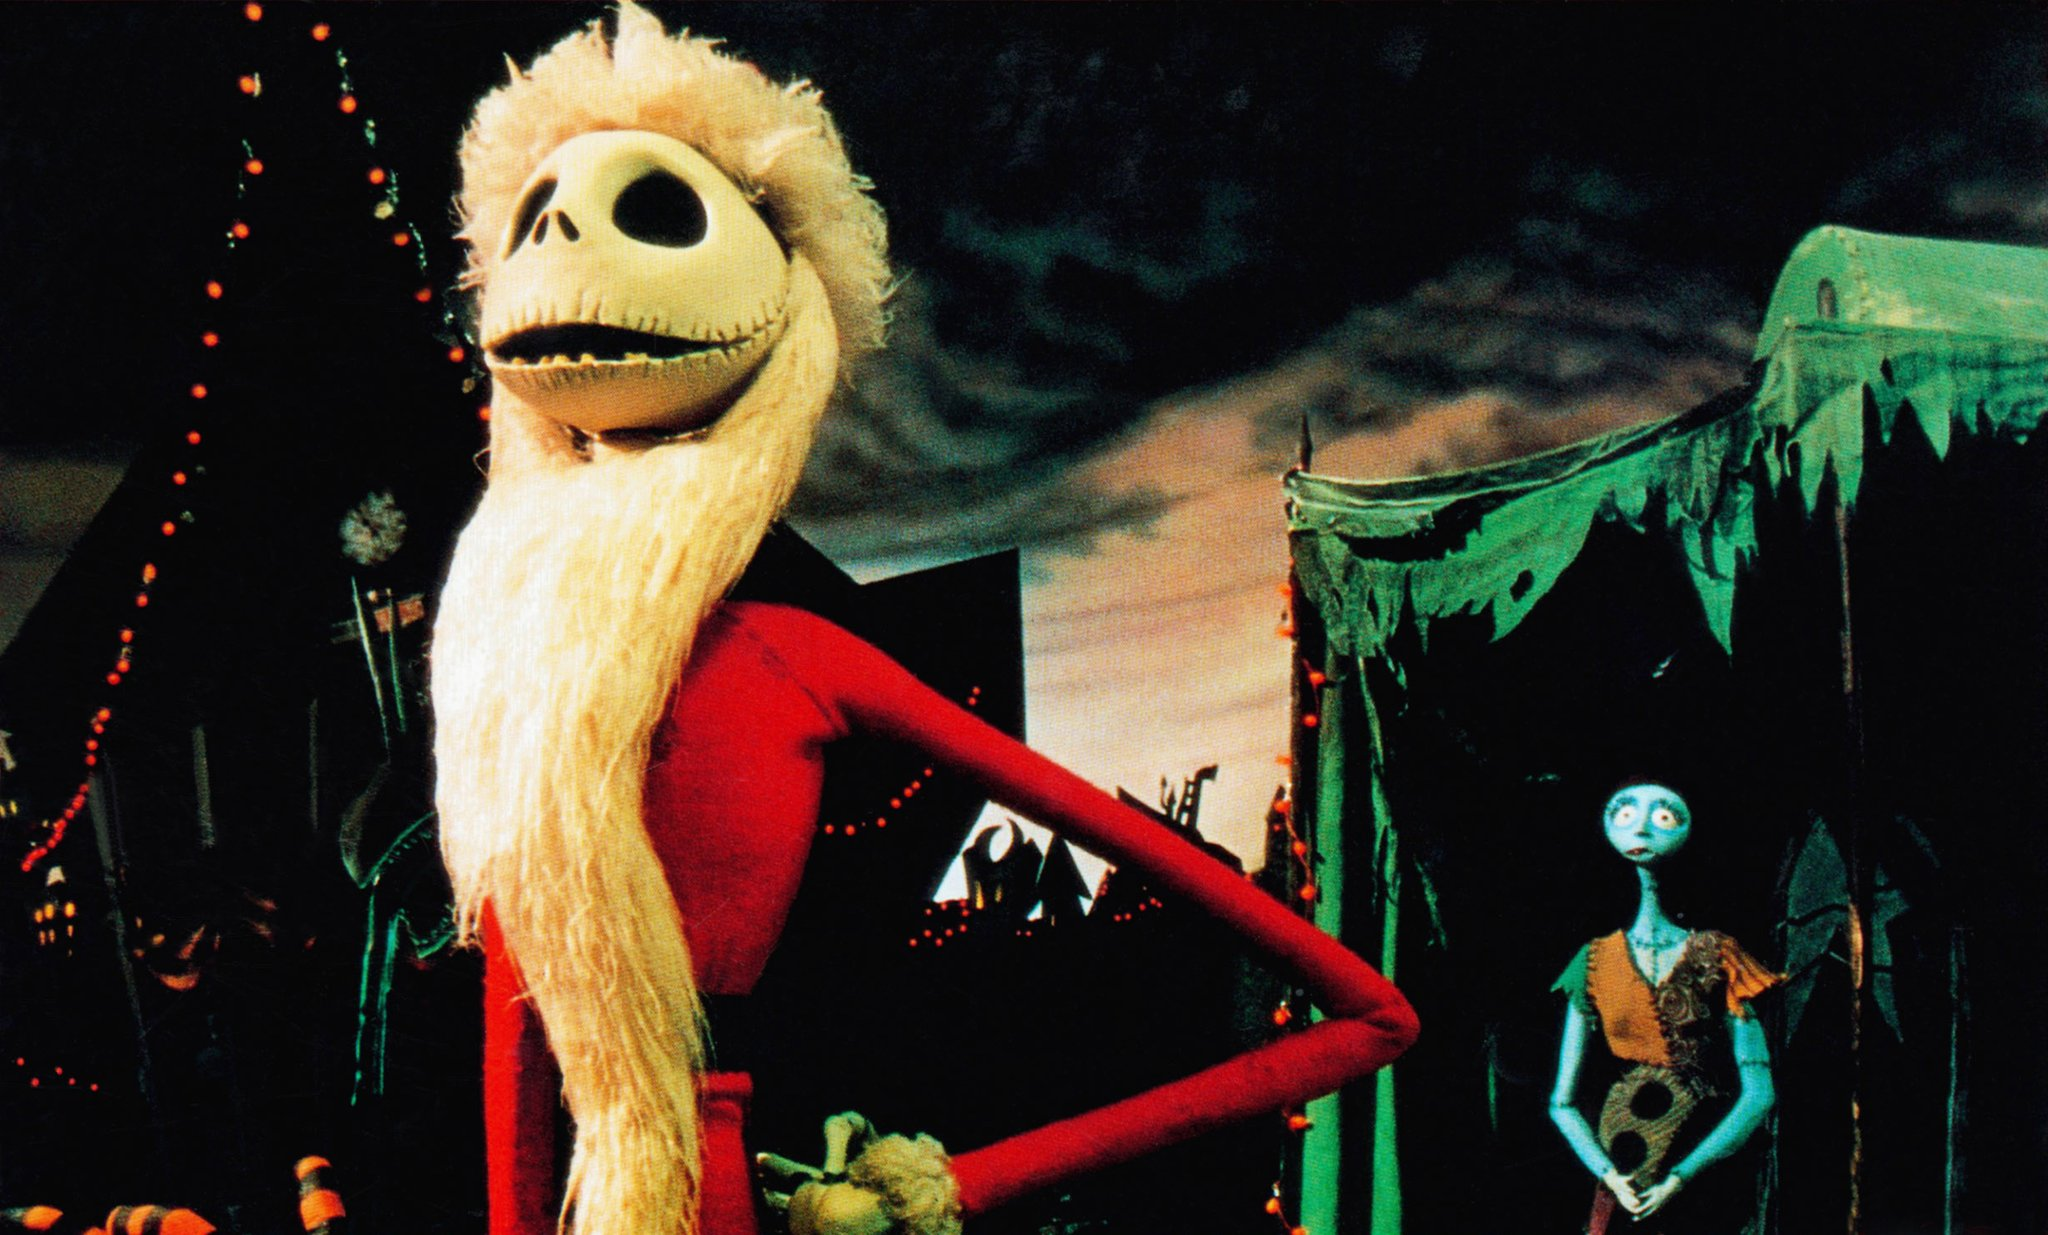 The Nightmare Before Christmas Santa